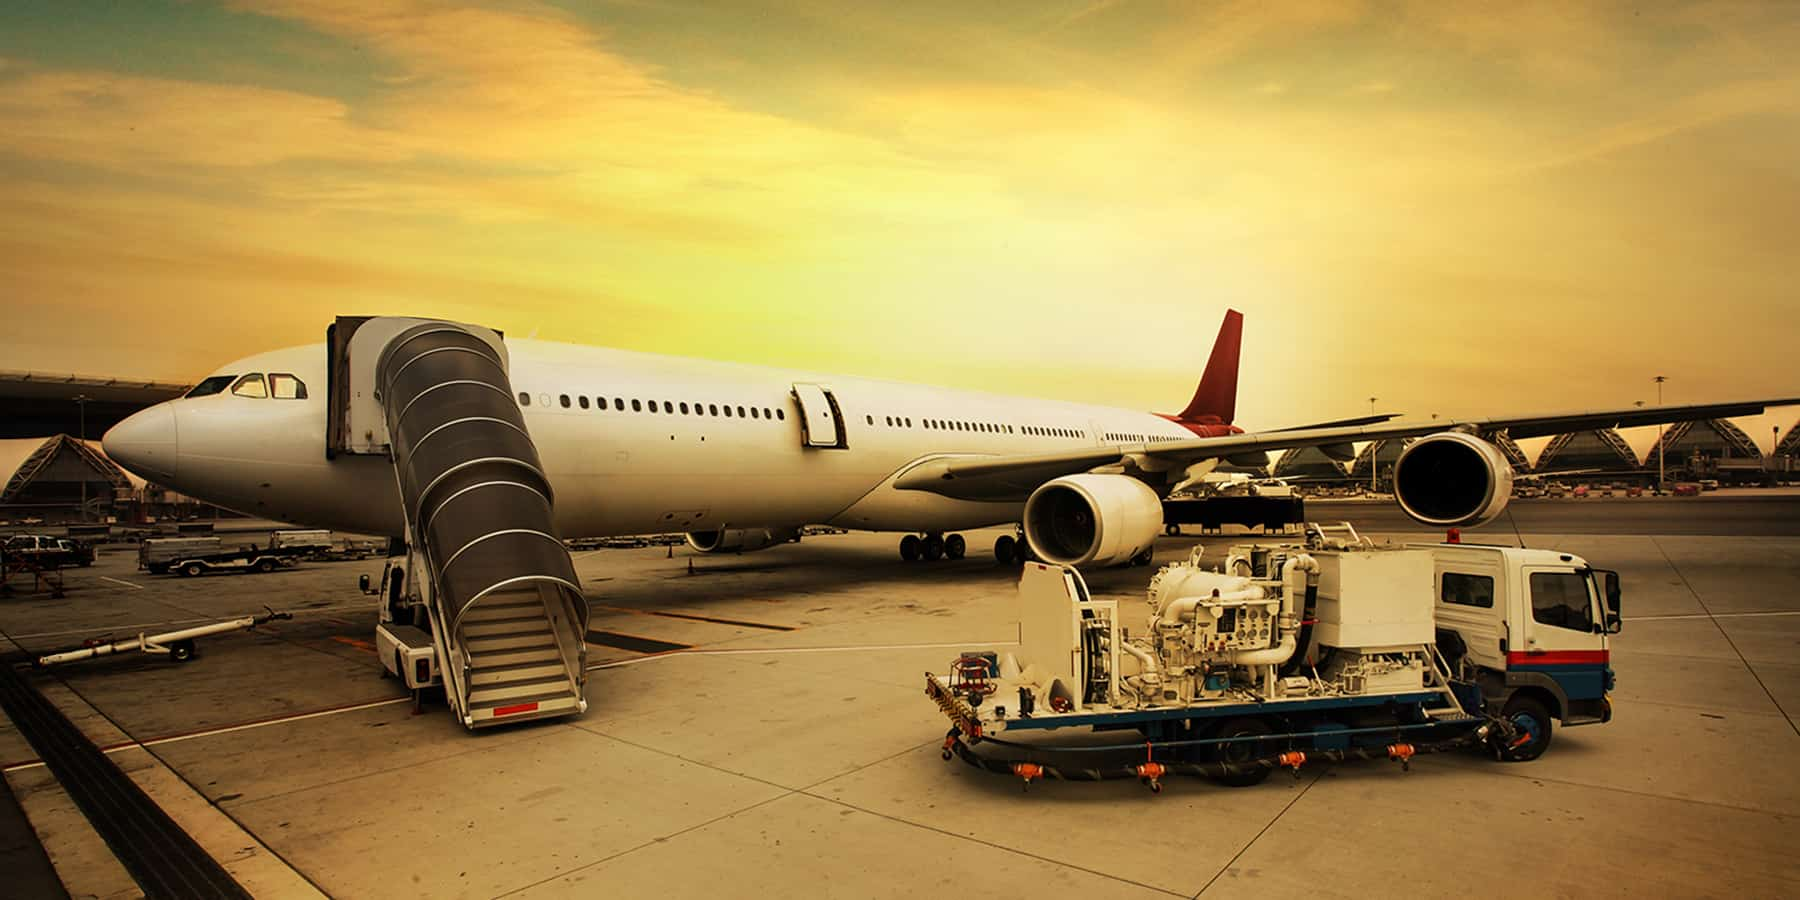 Airport Support Equipment